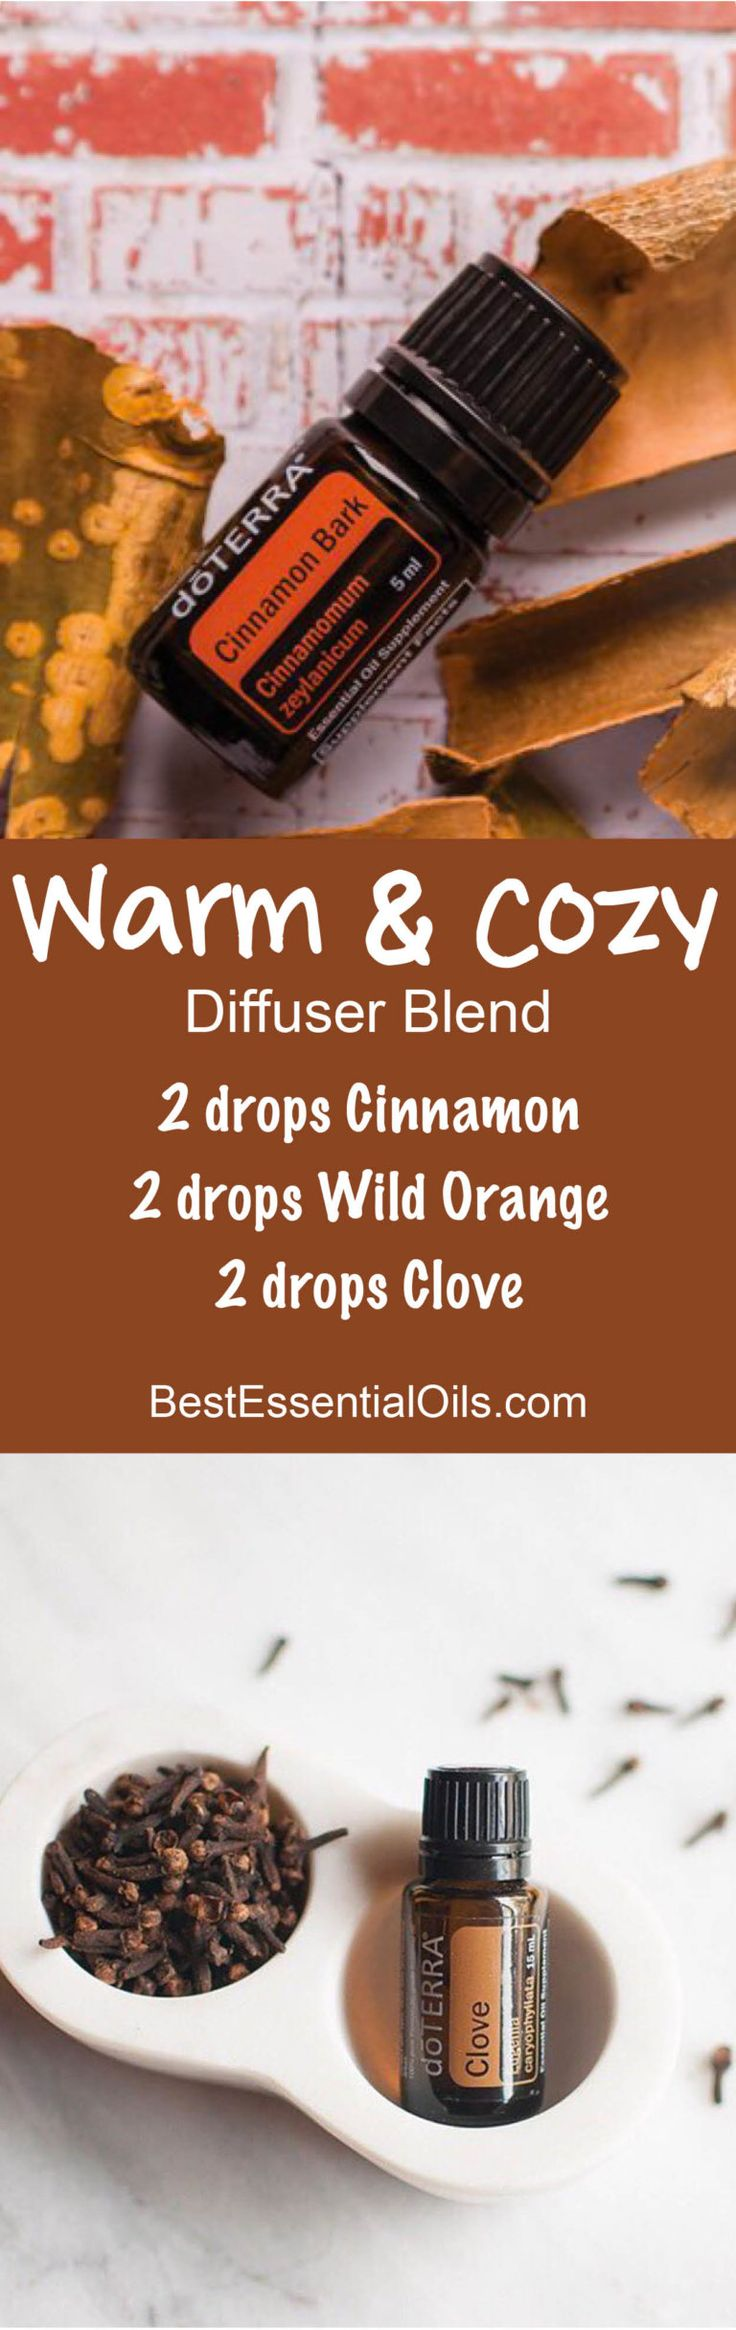 25 Best Ideas About Diffusers On Pinterest Essential